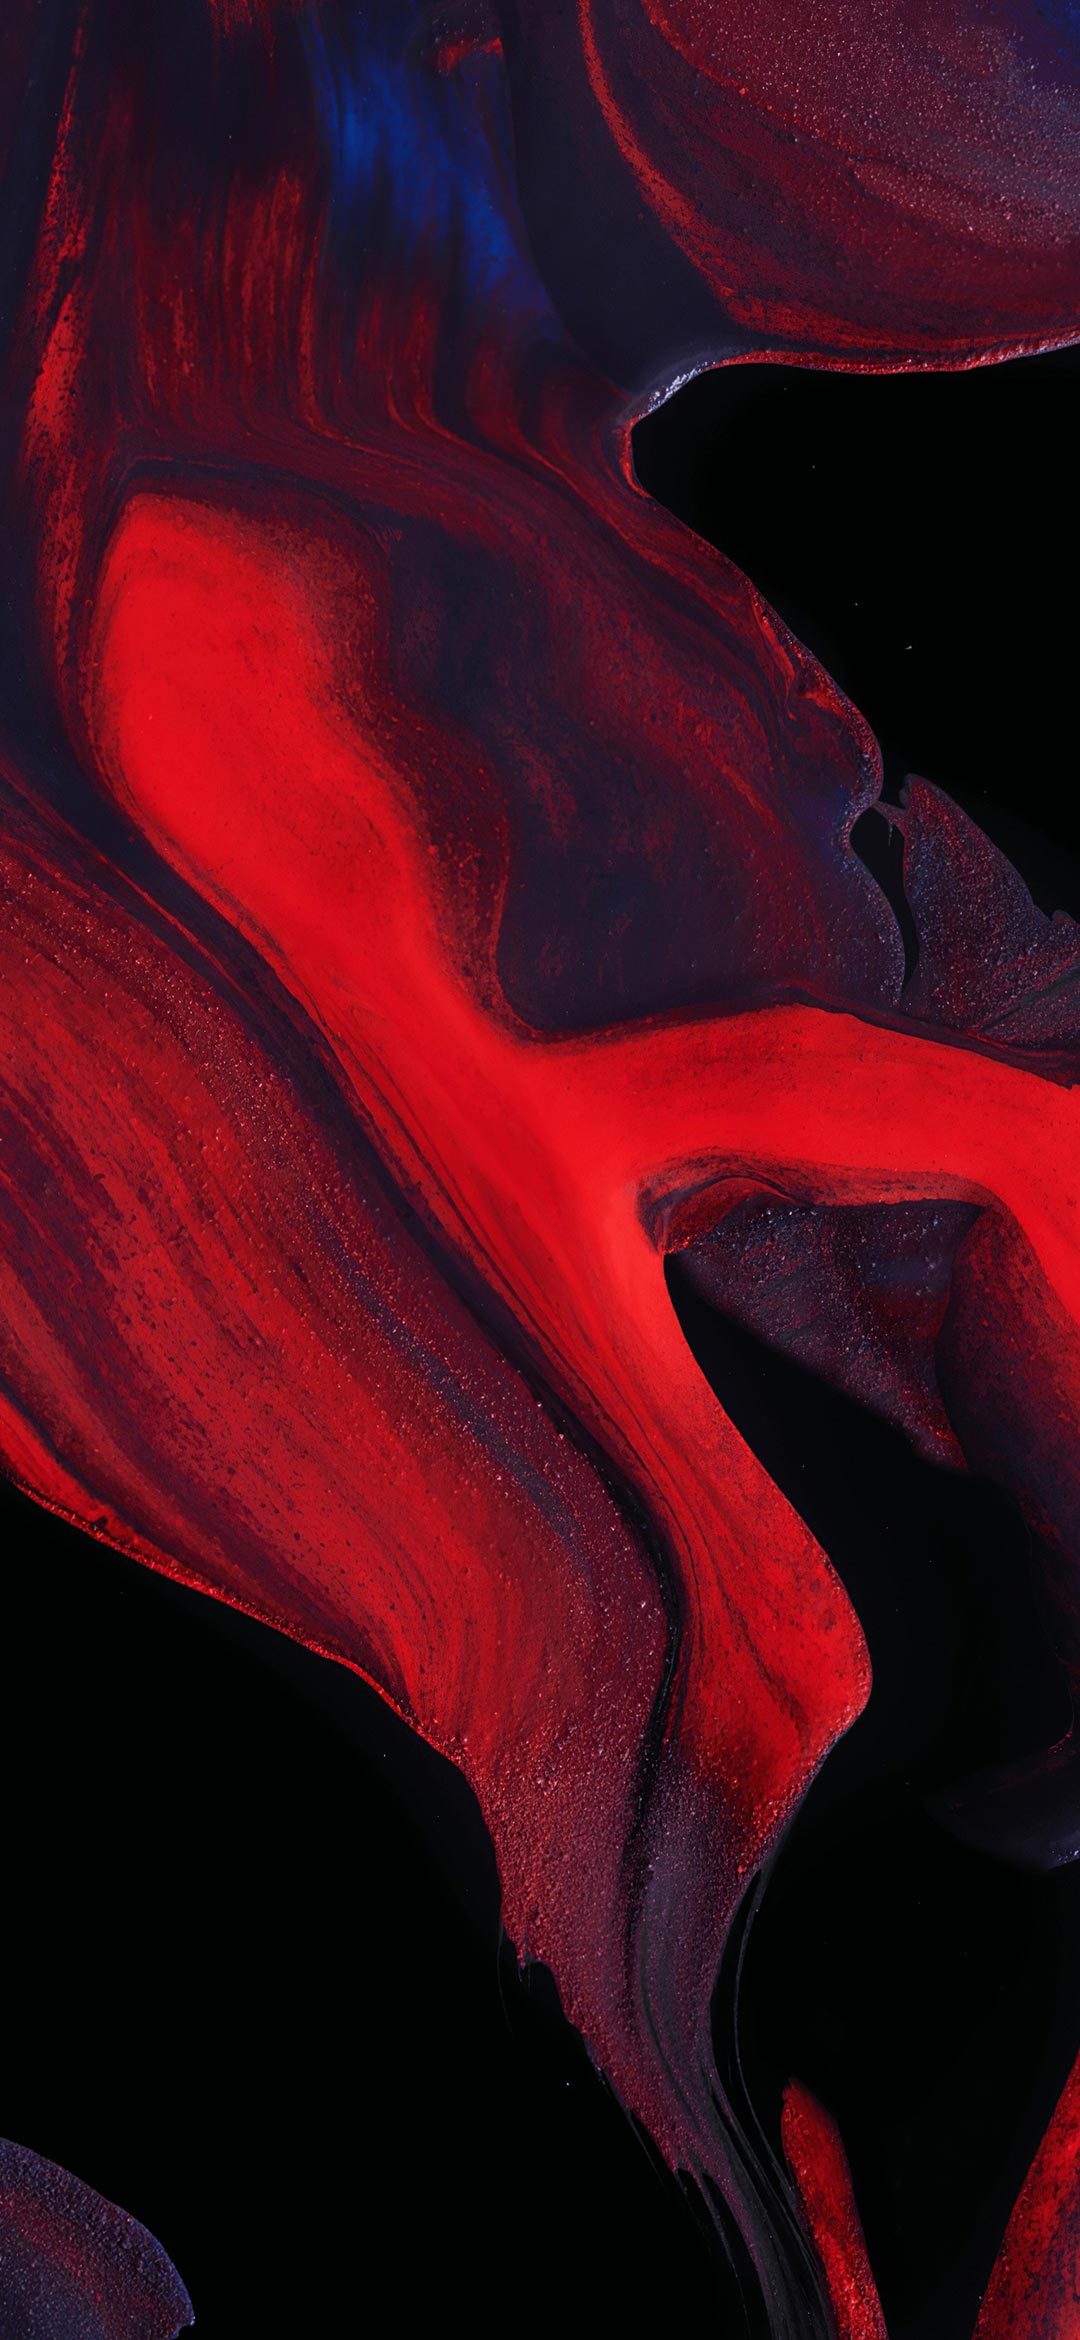 Android 10 red abstract wallpaper